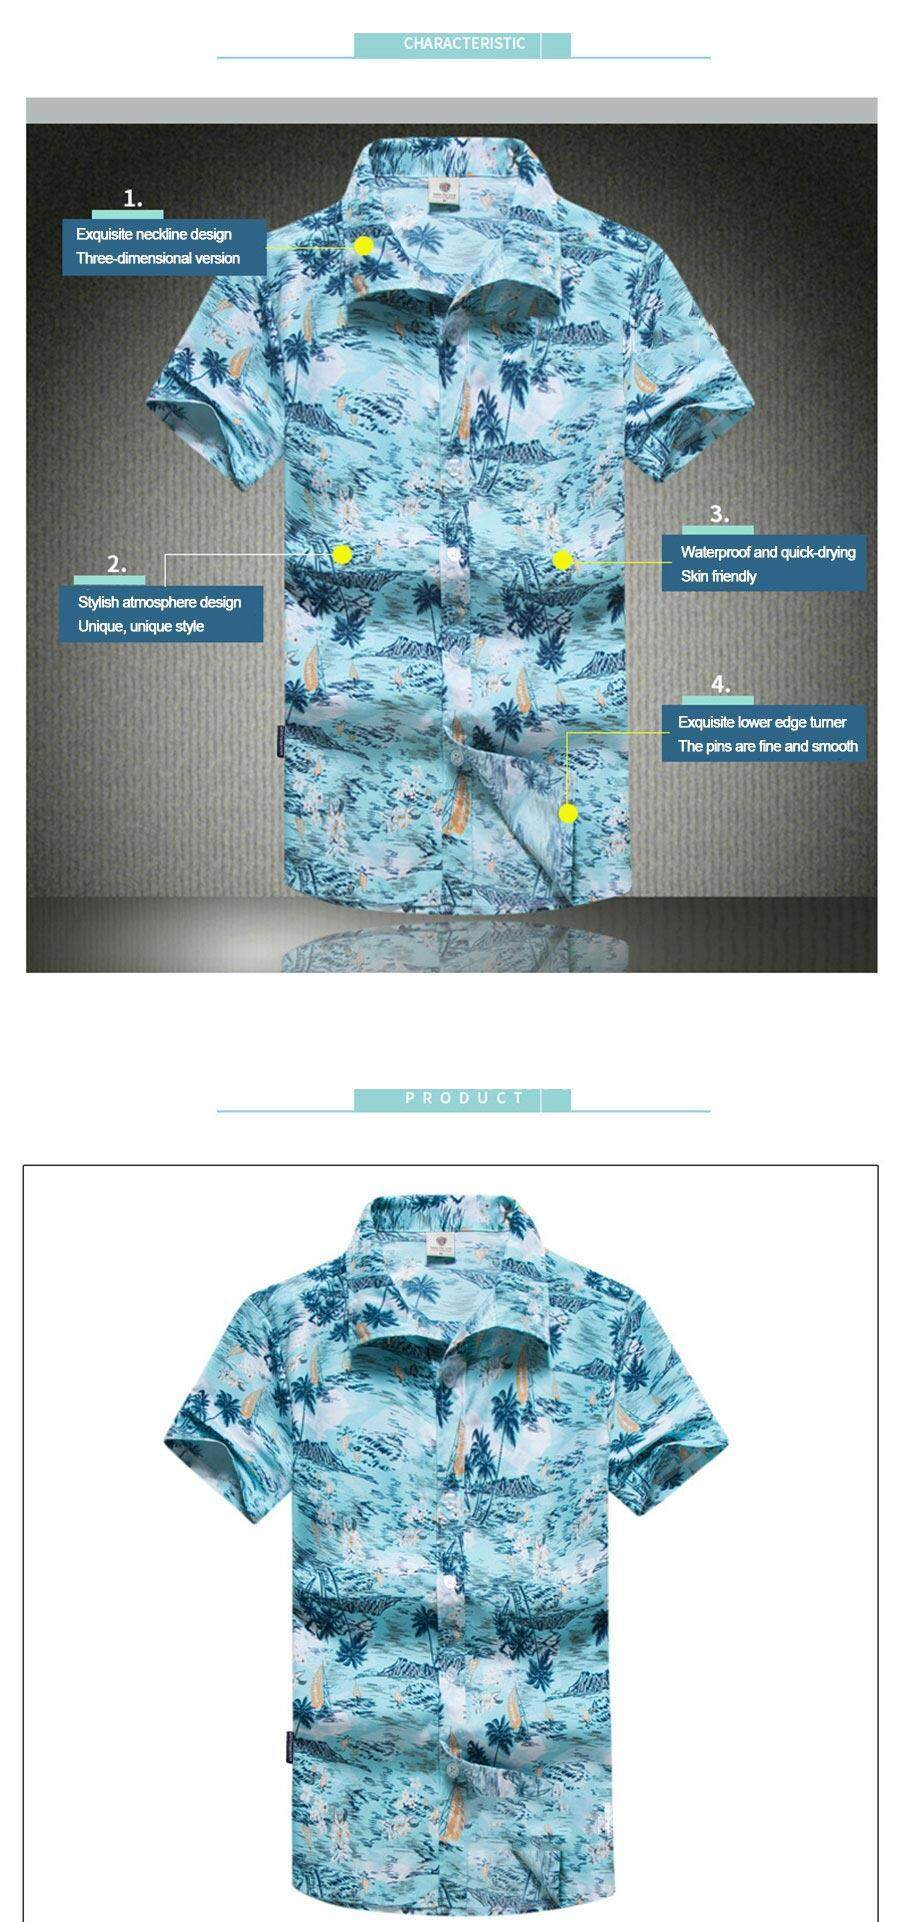 1aae6e3e Waterproof and quick-drying breathable fabric, more comfortable and  comfortable to wear